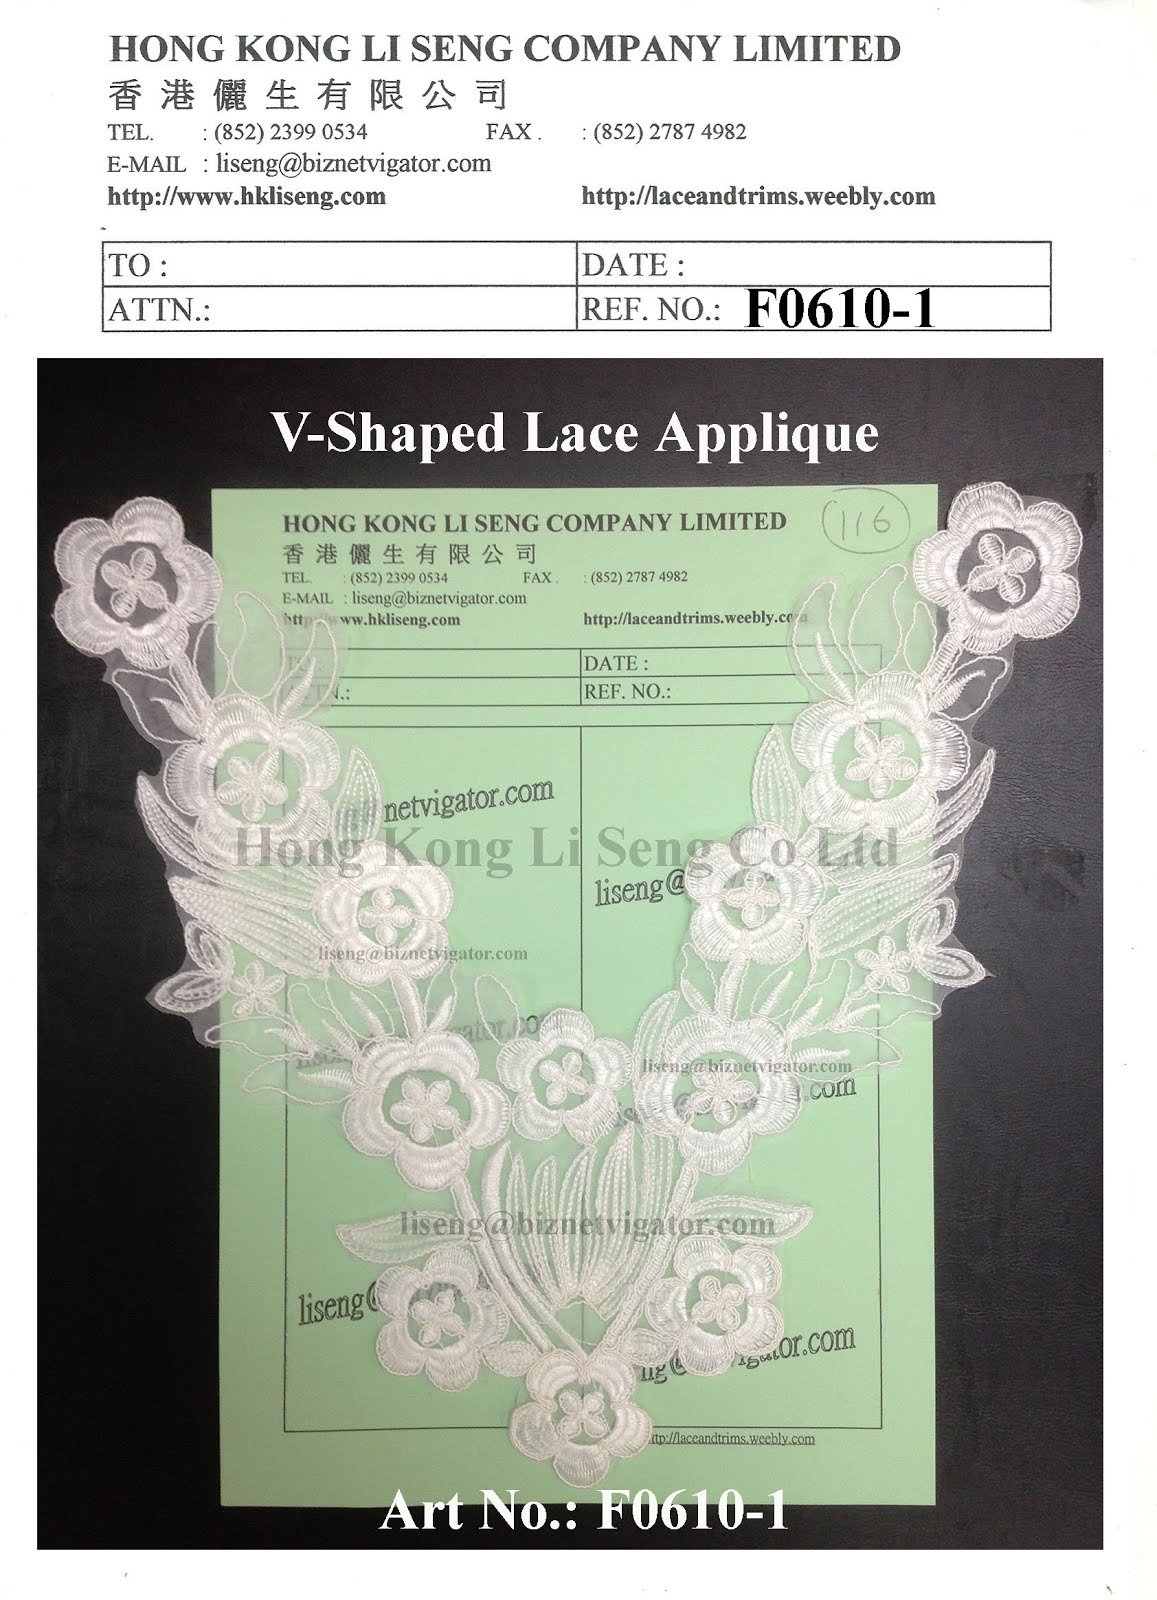 V-Shaped Lace Applique for Event and Wedding Dress